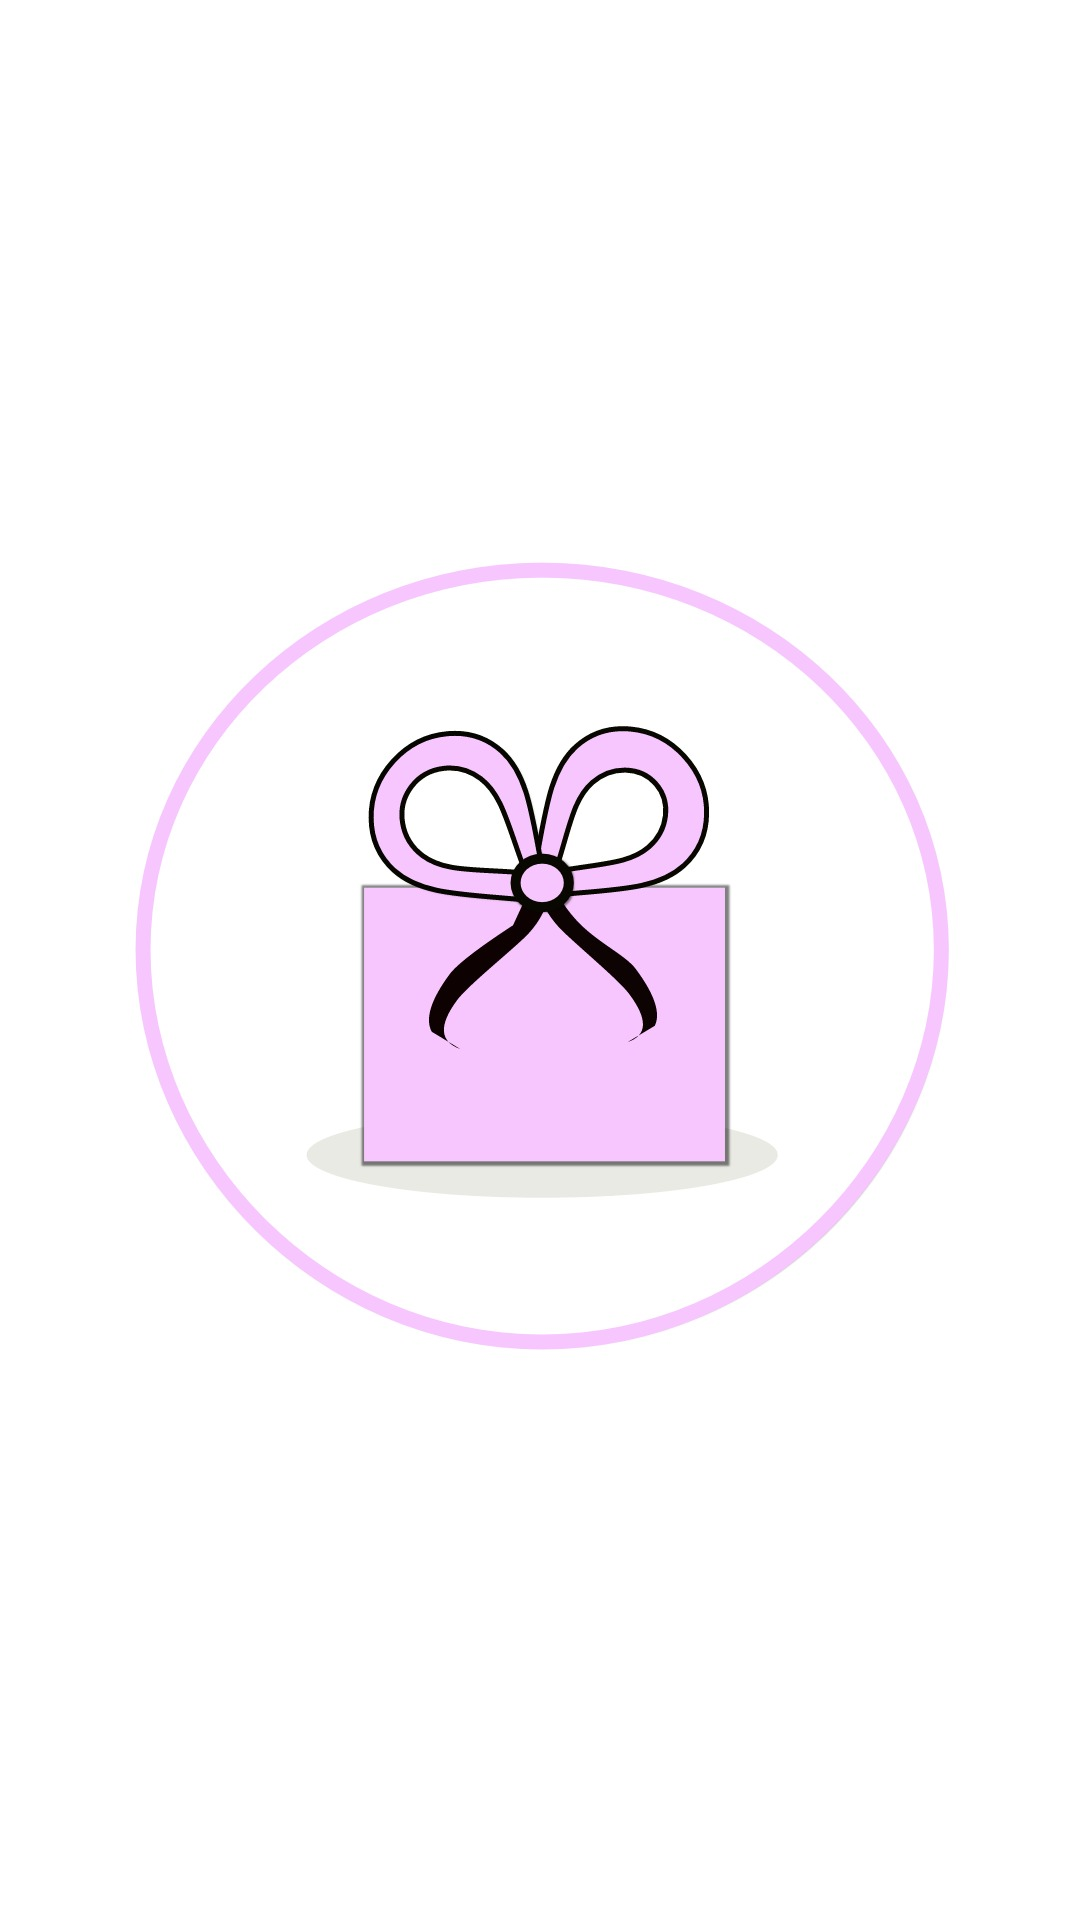 Instagram-cover-box-pink-white-lotnotes.com.jpg